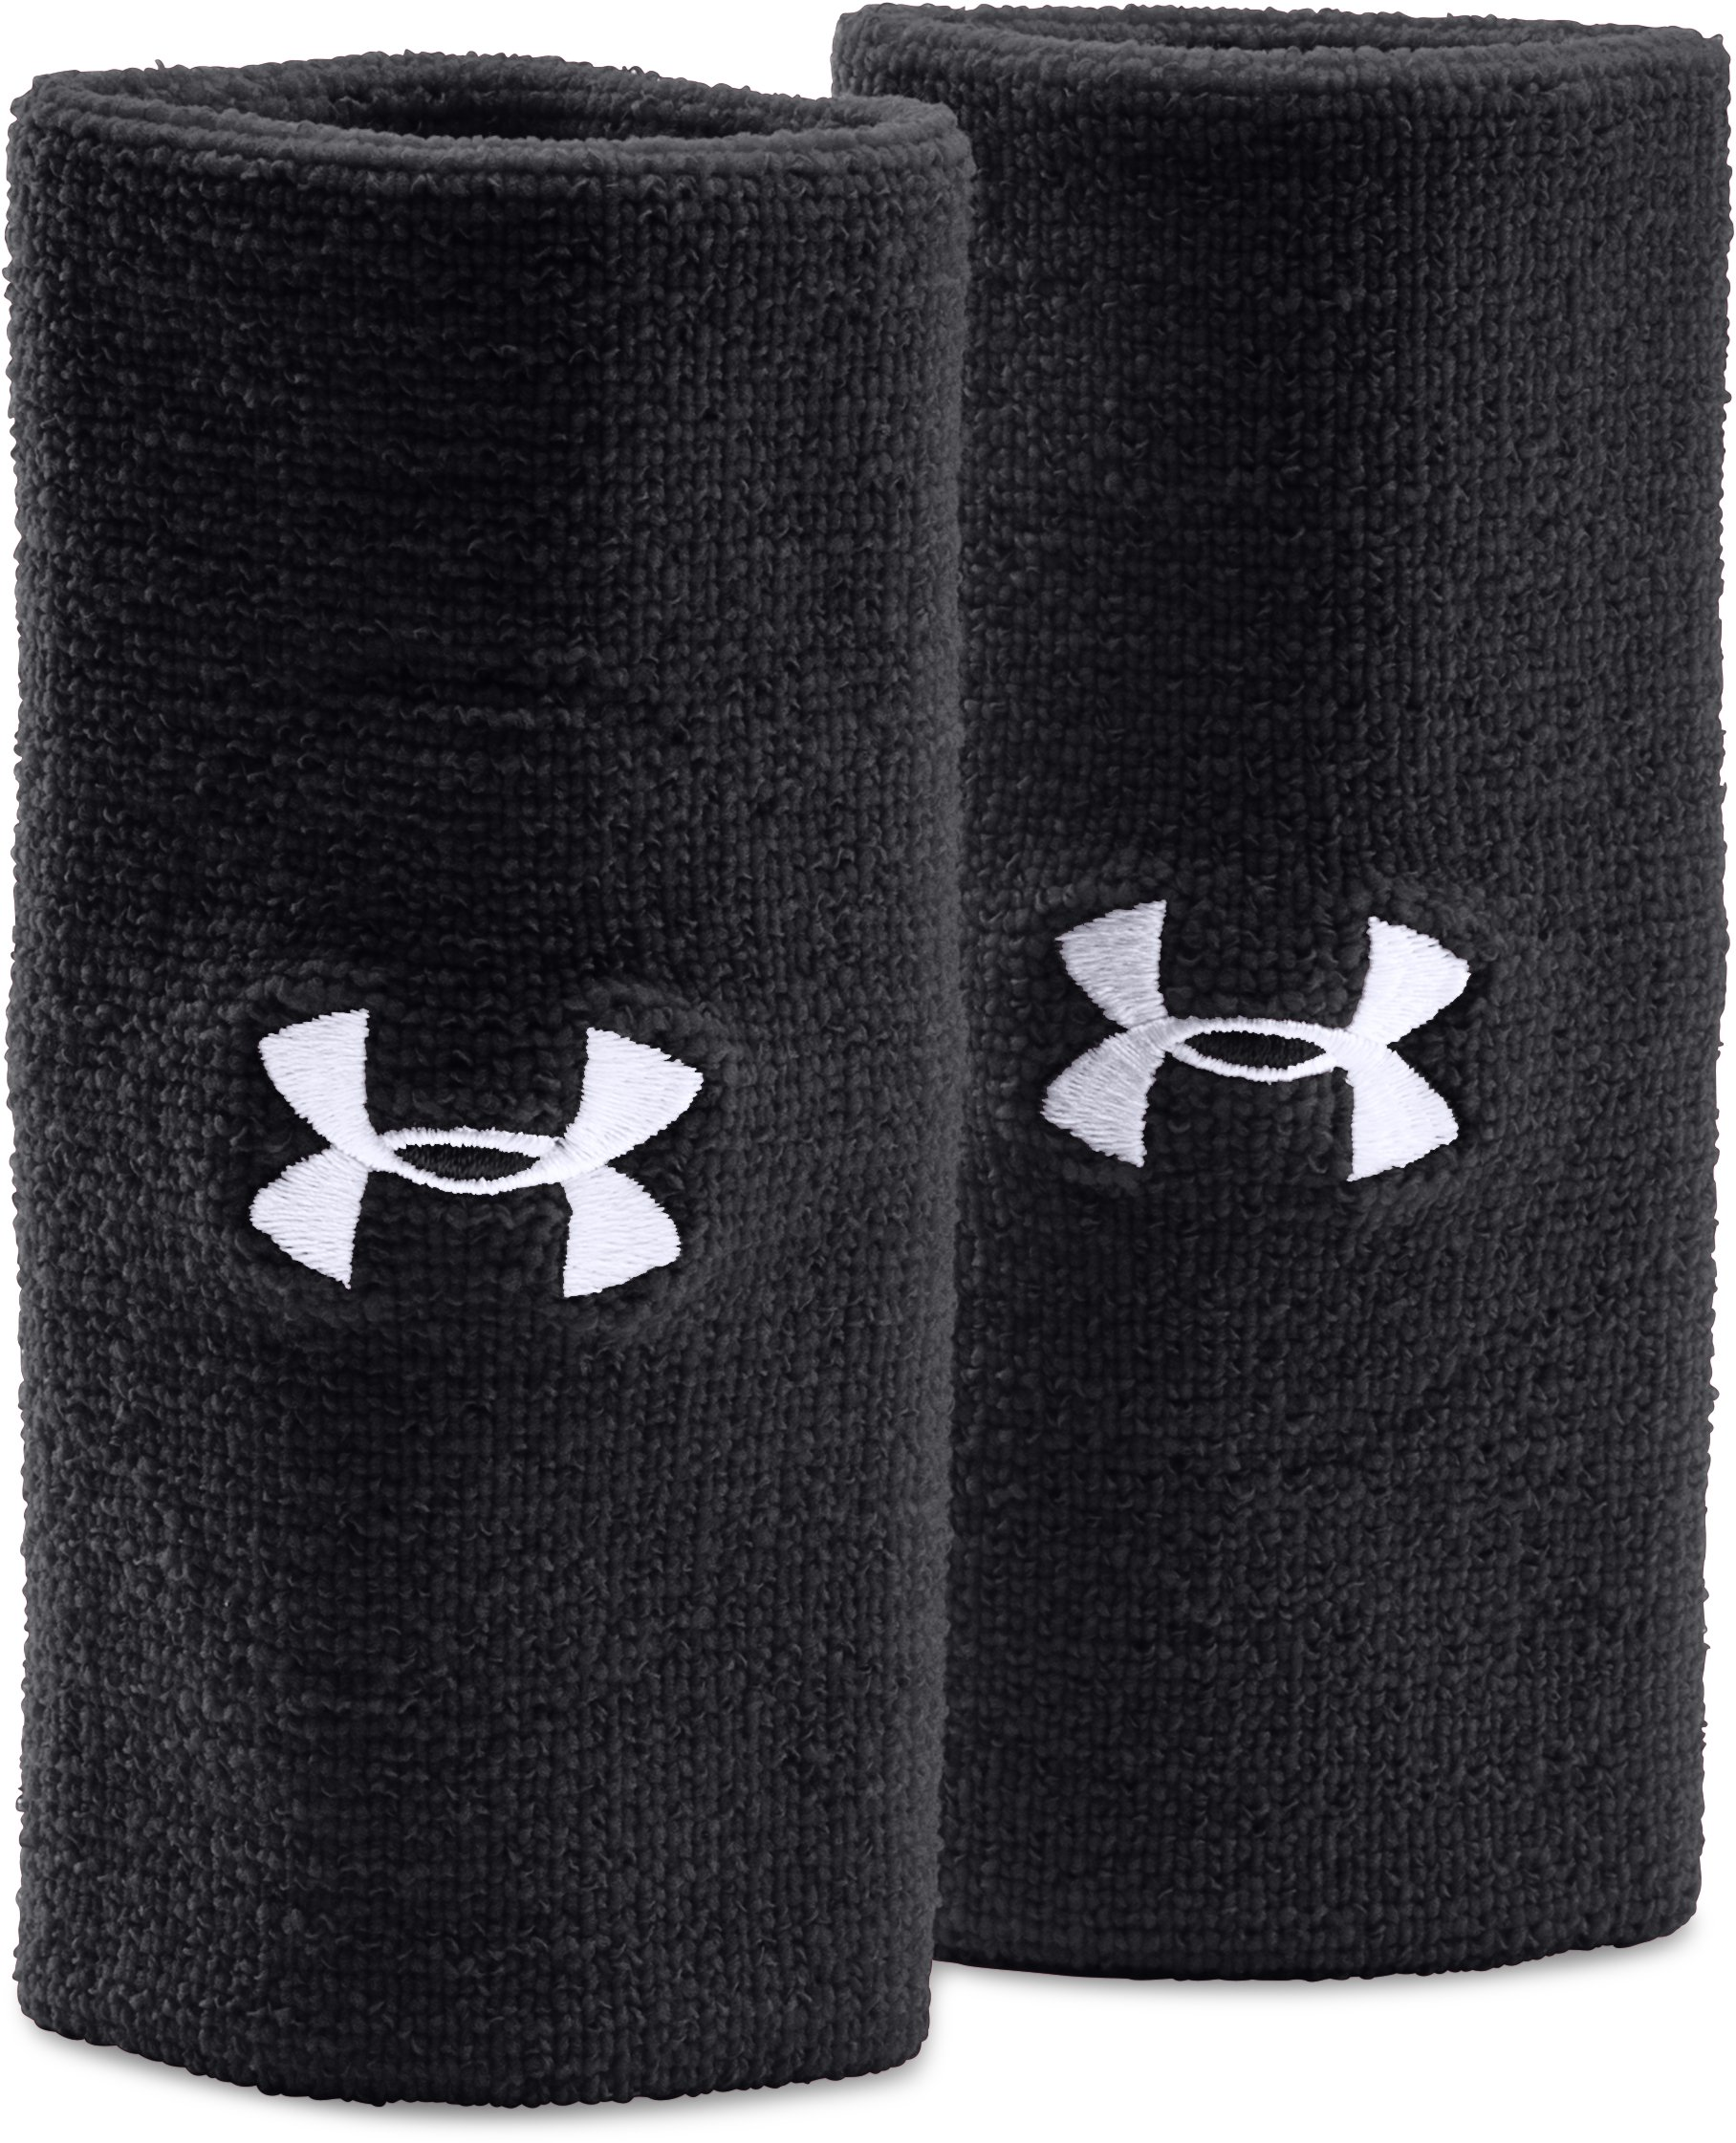 "athletic wristbands 6"" UA Performance Wristband 2-Pack This wristband is great for any workouts/<strong>sports</strong>."